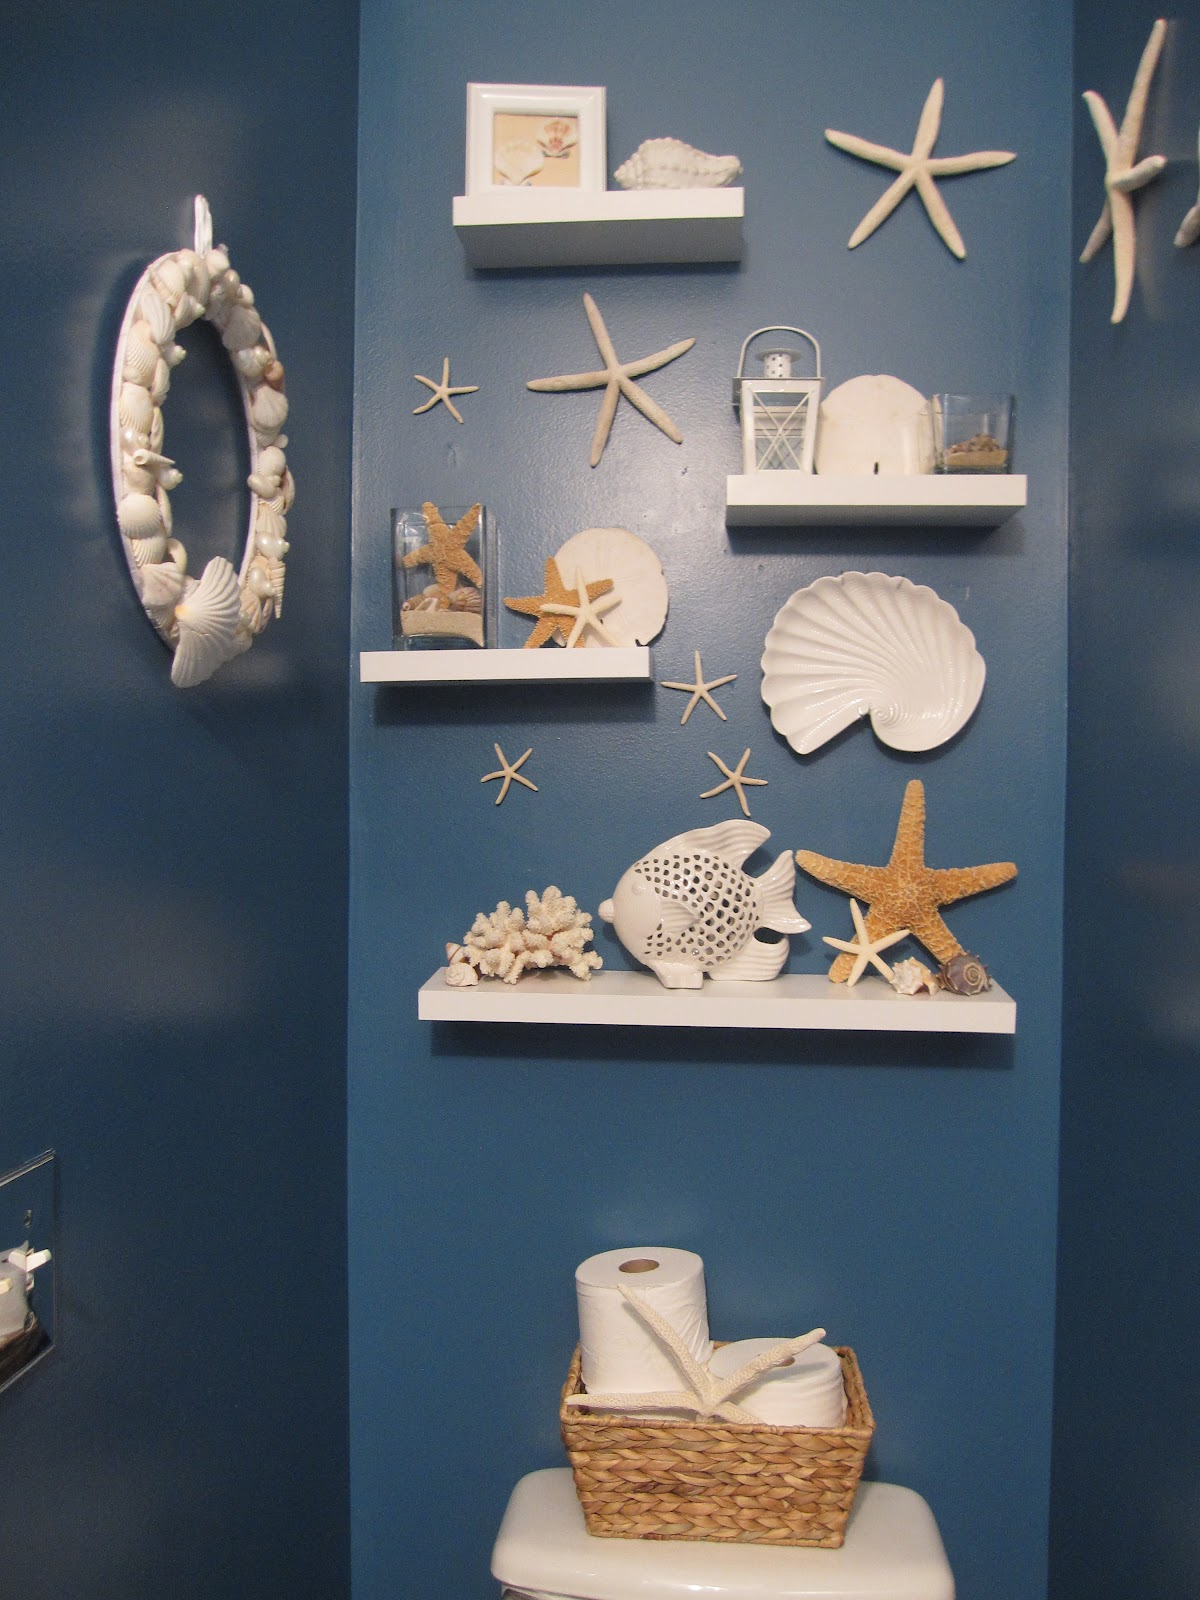 decorating with shells storage bookcase bookshelf shelf shelving baskets starfish coastal beach house ocean sea decor accessories style accessorize themed furniture stores